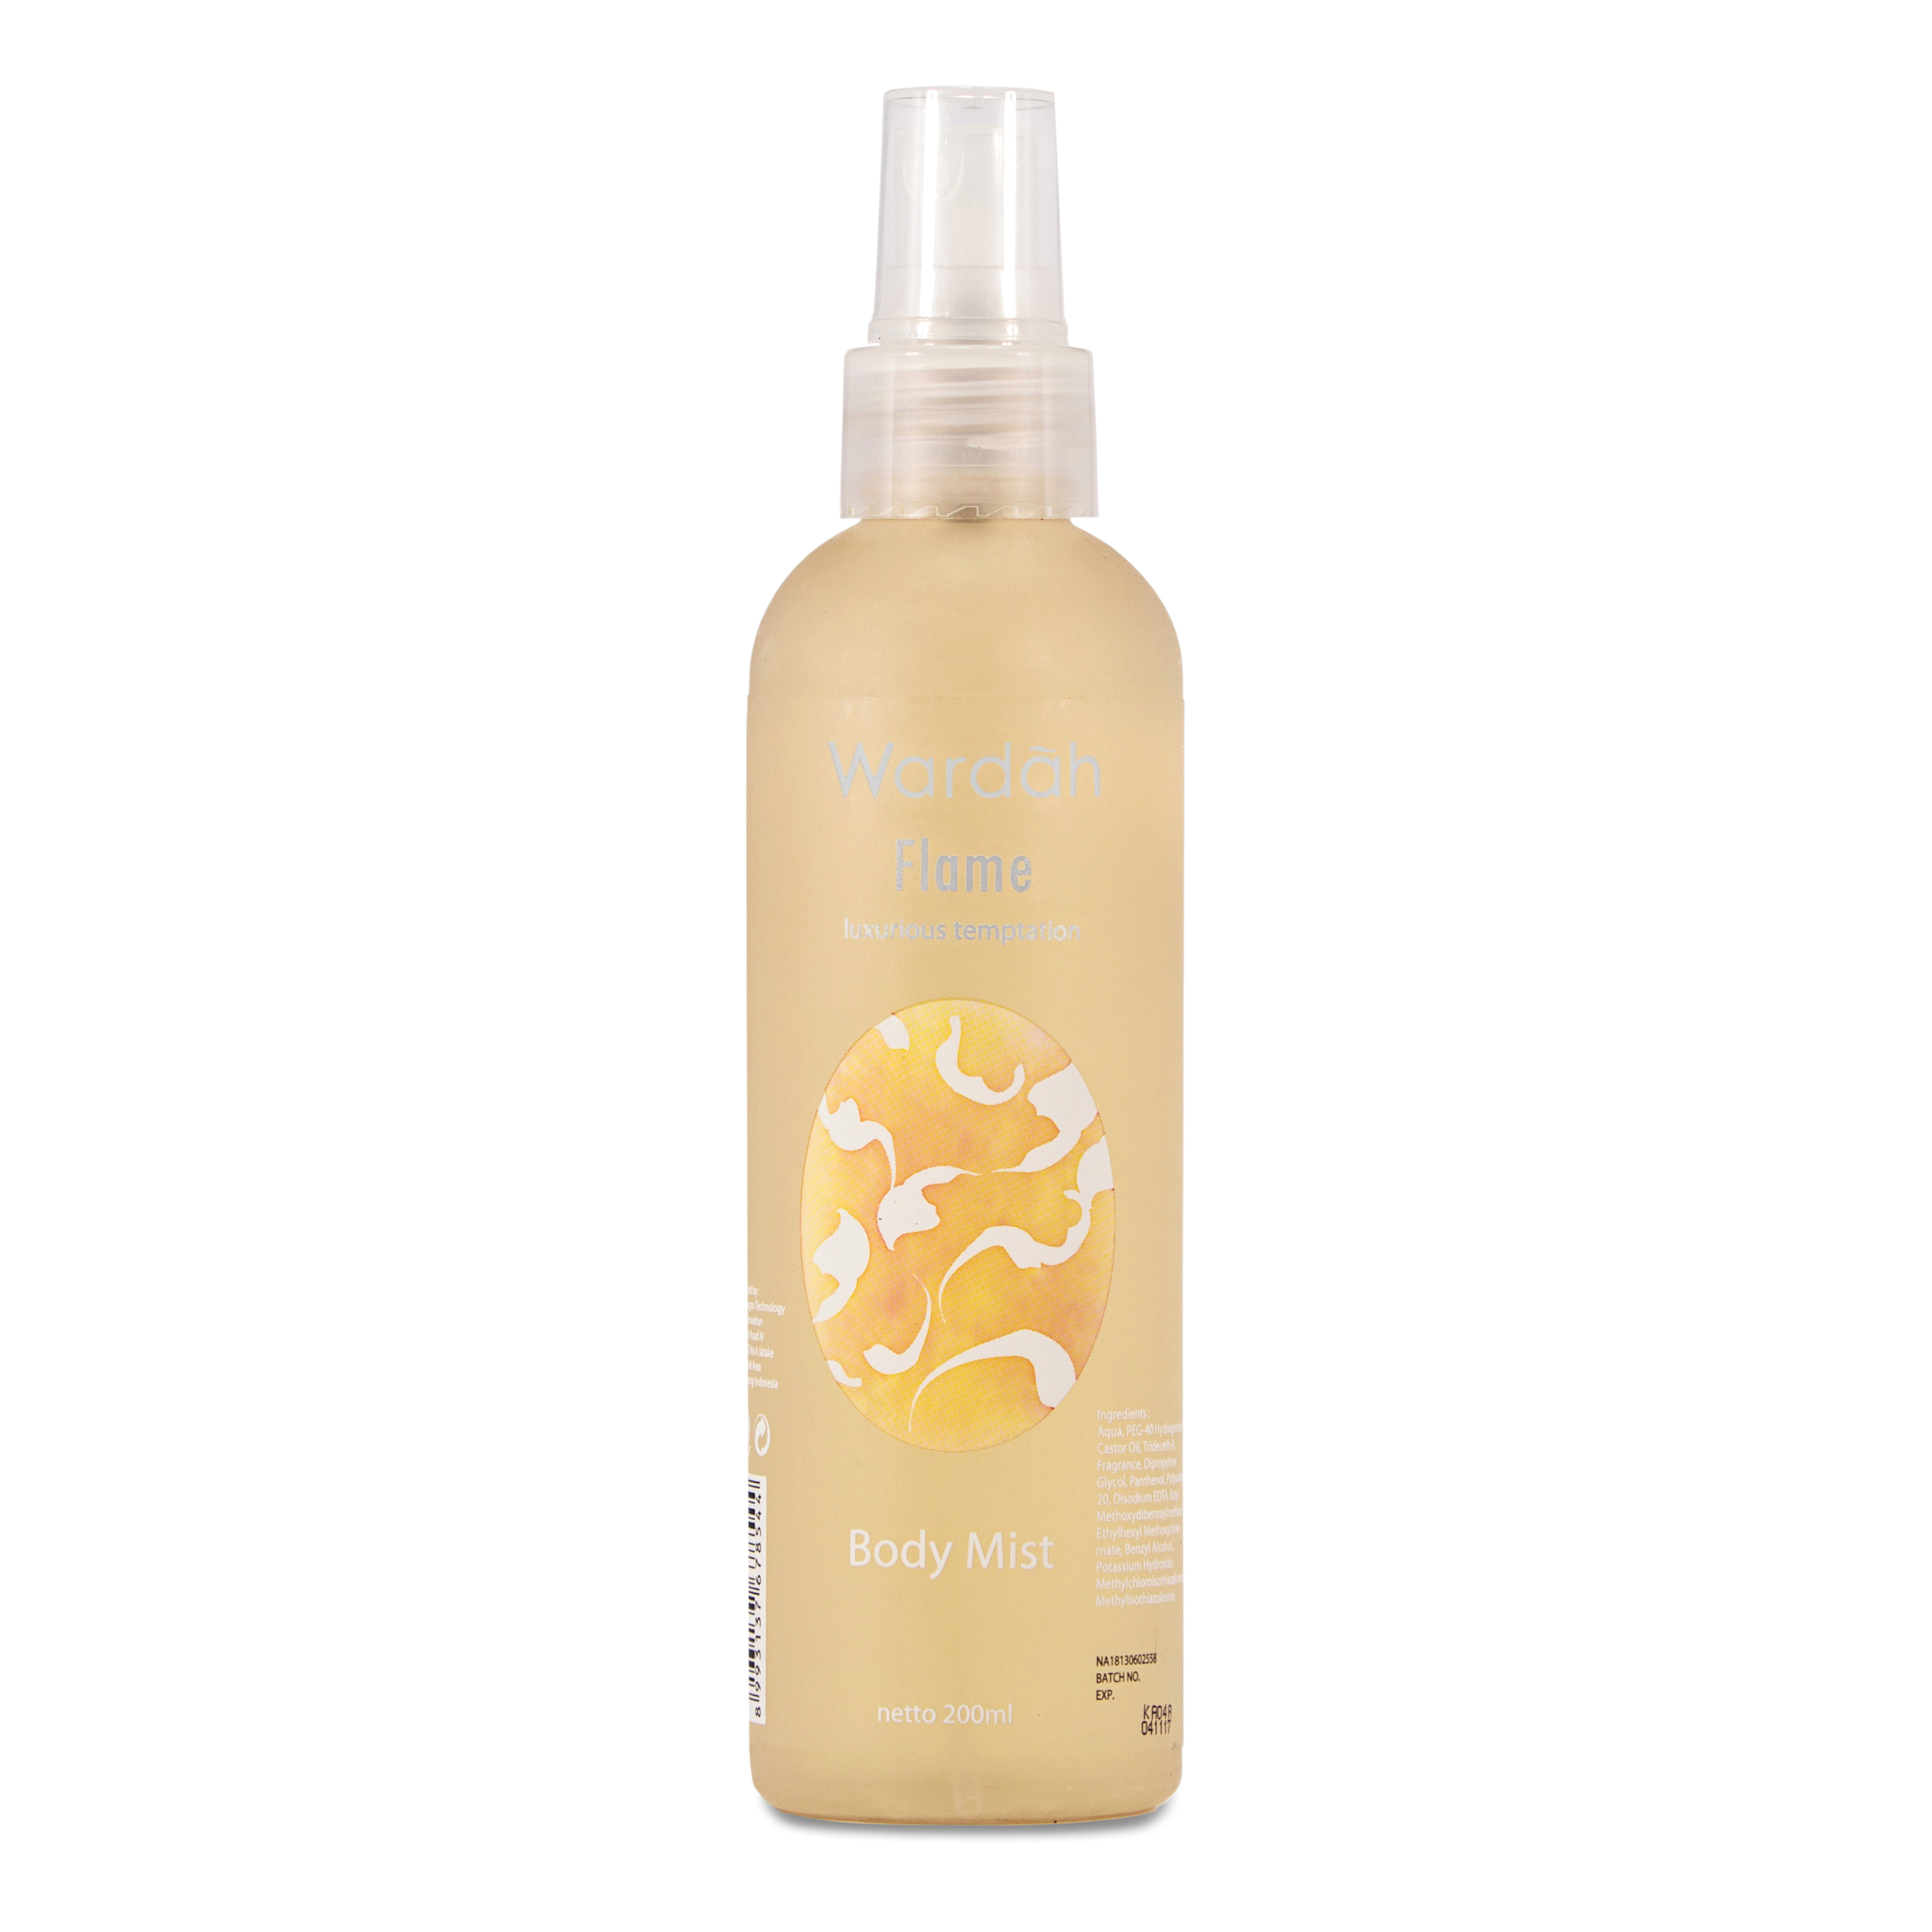 Wardah Body Mist Scentsation Flame 200 Ml